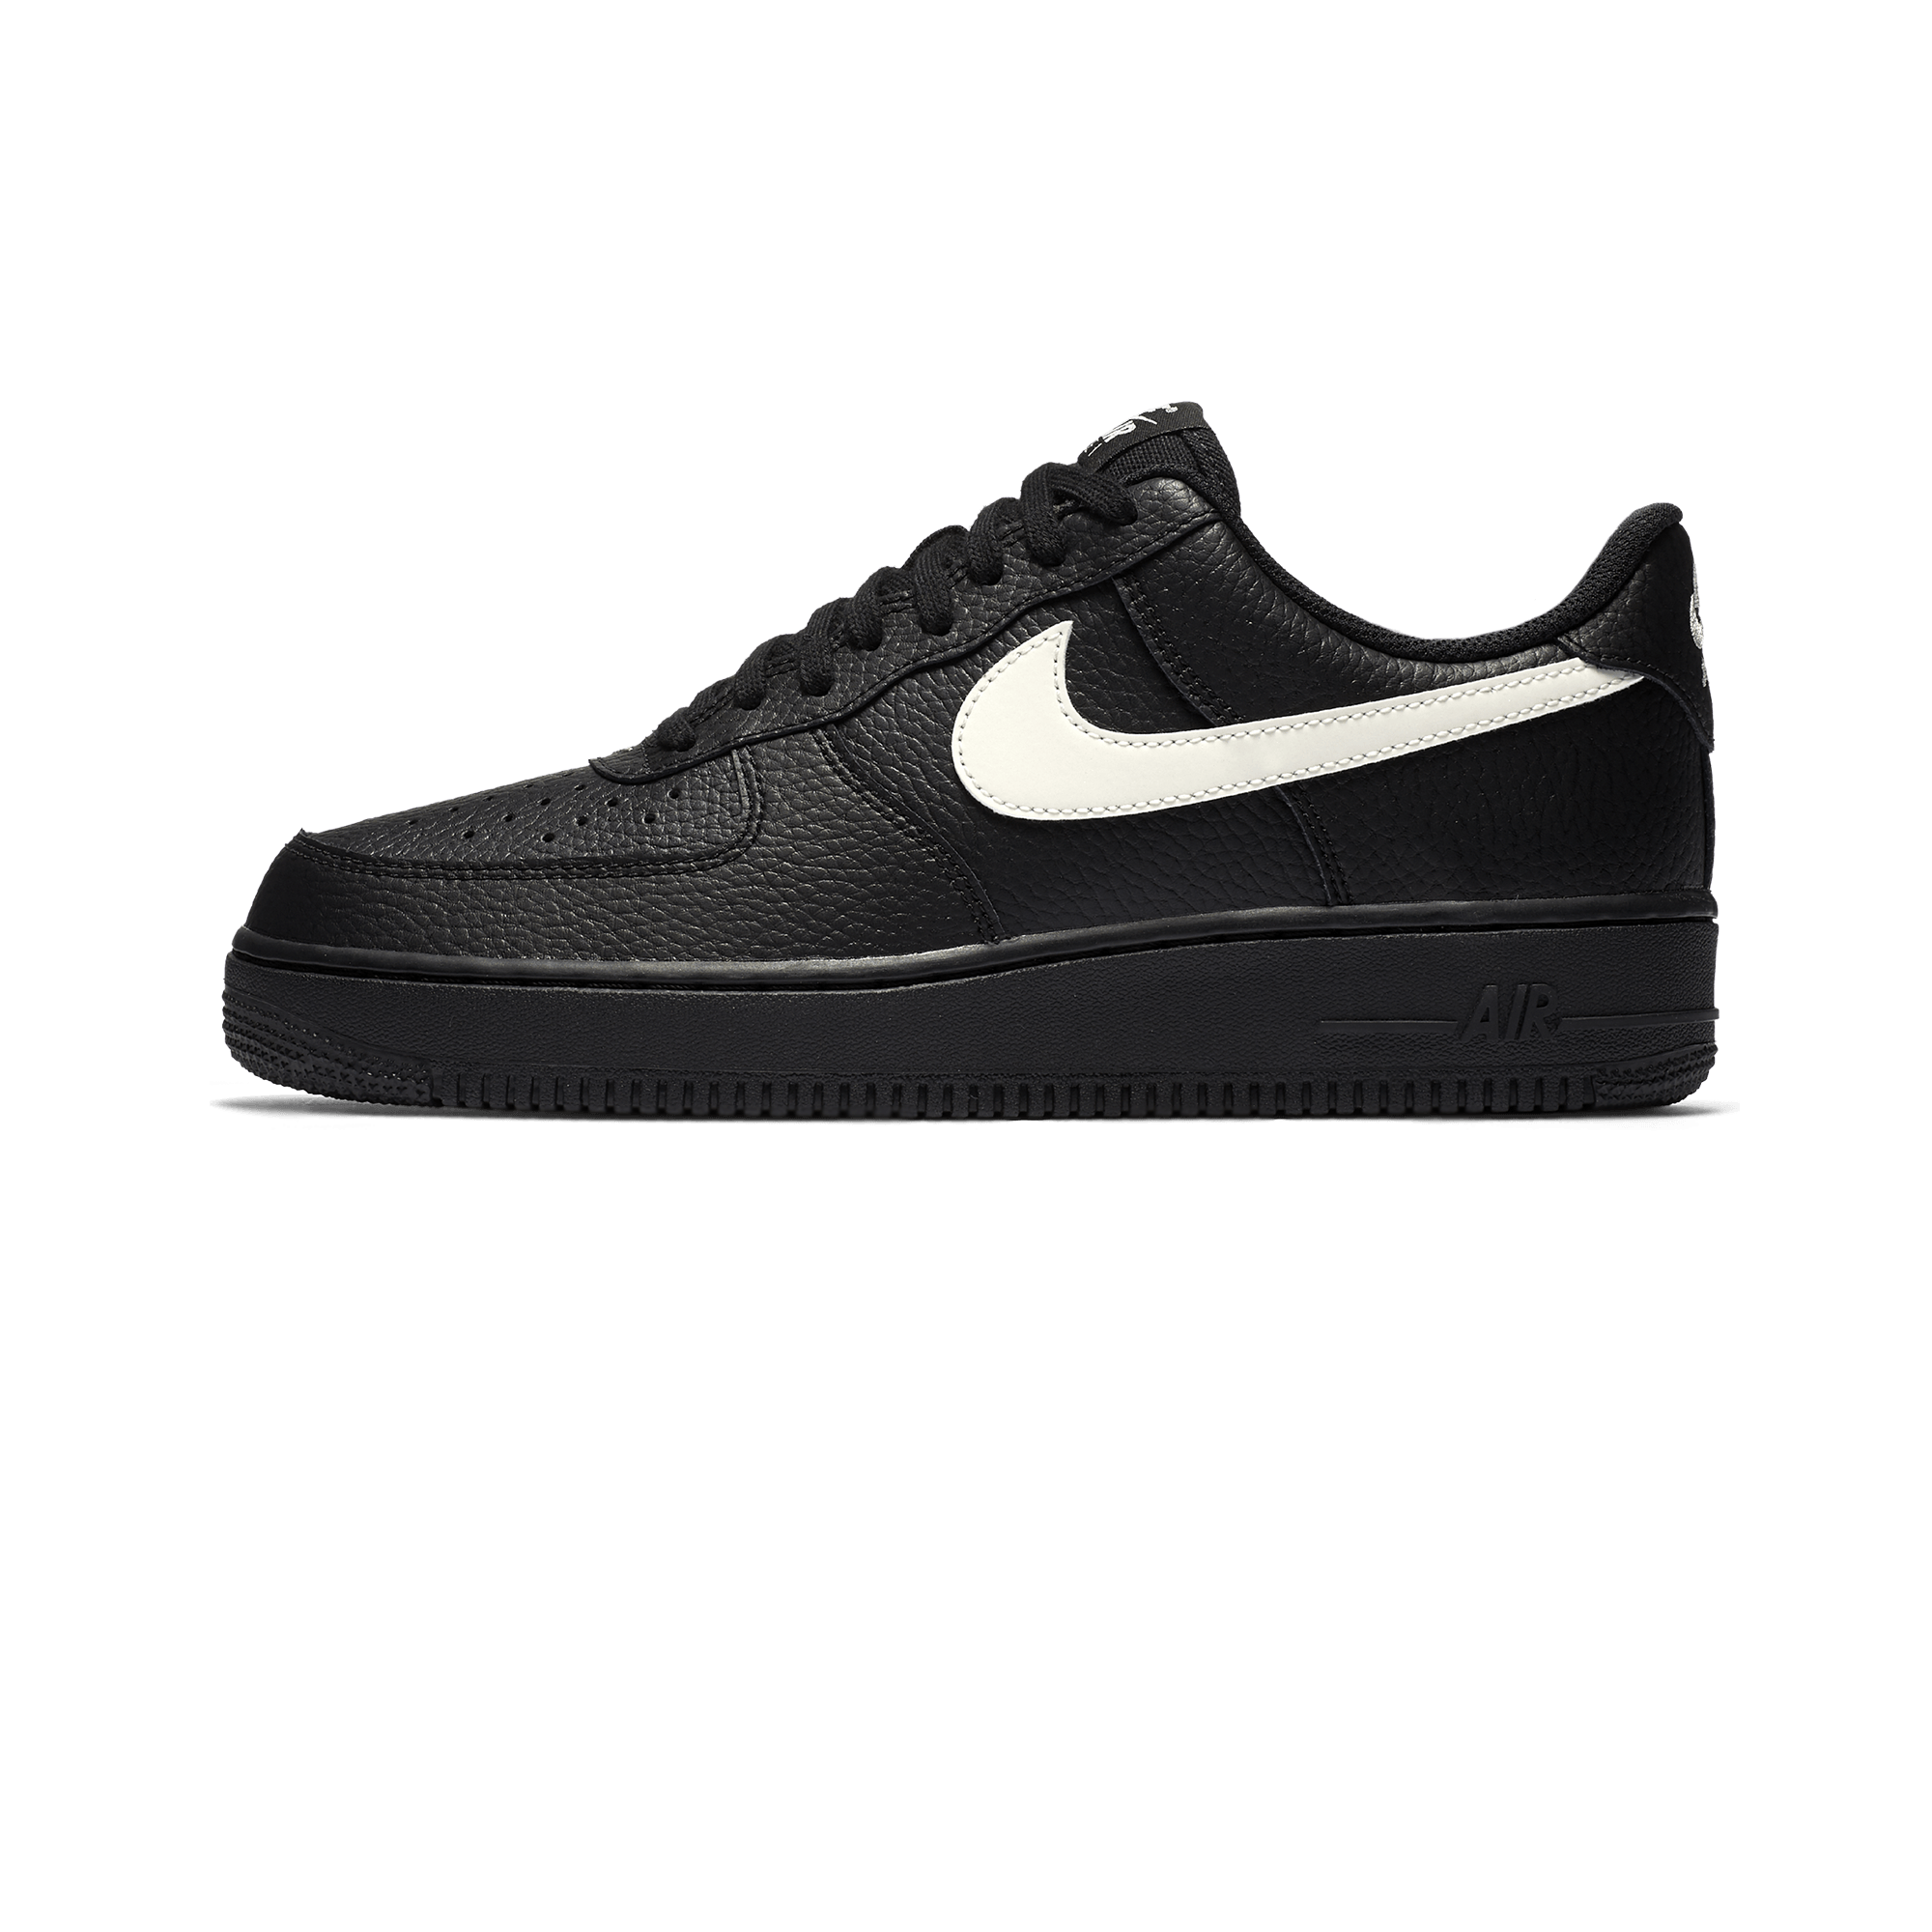 f6c2f7df394dbd белый черный nike air force 1 07 wholesale sales 7e409 e5d00 ...